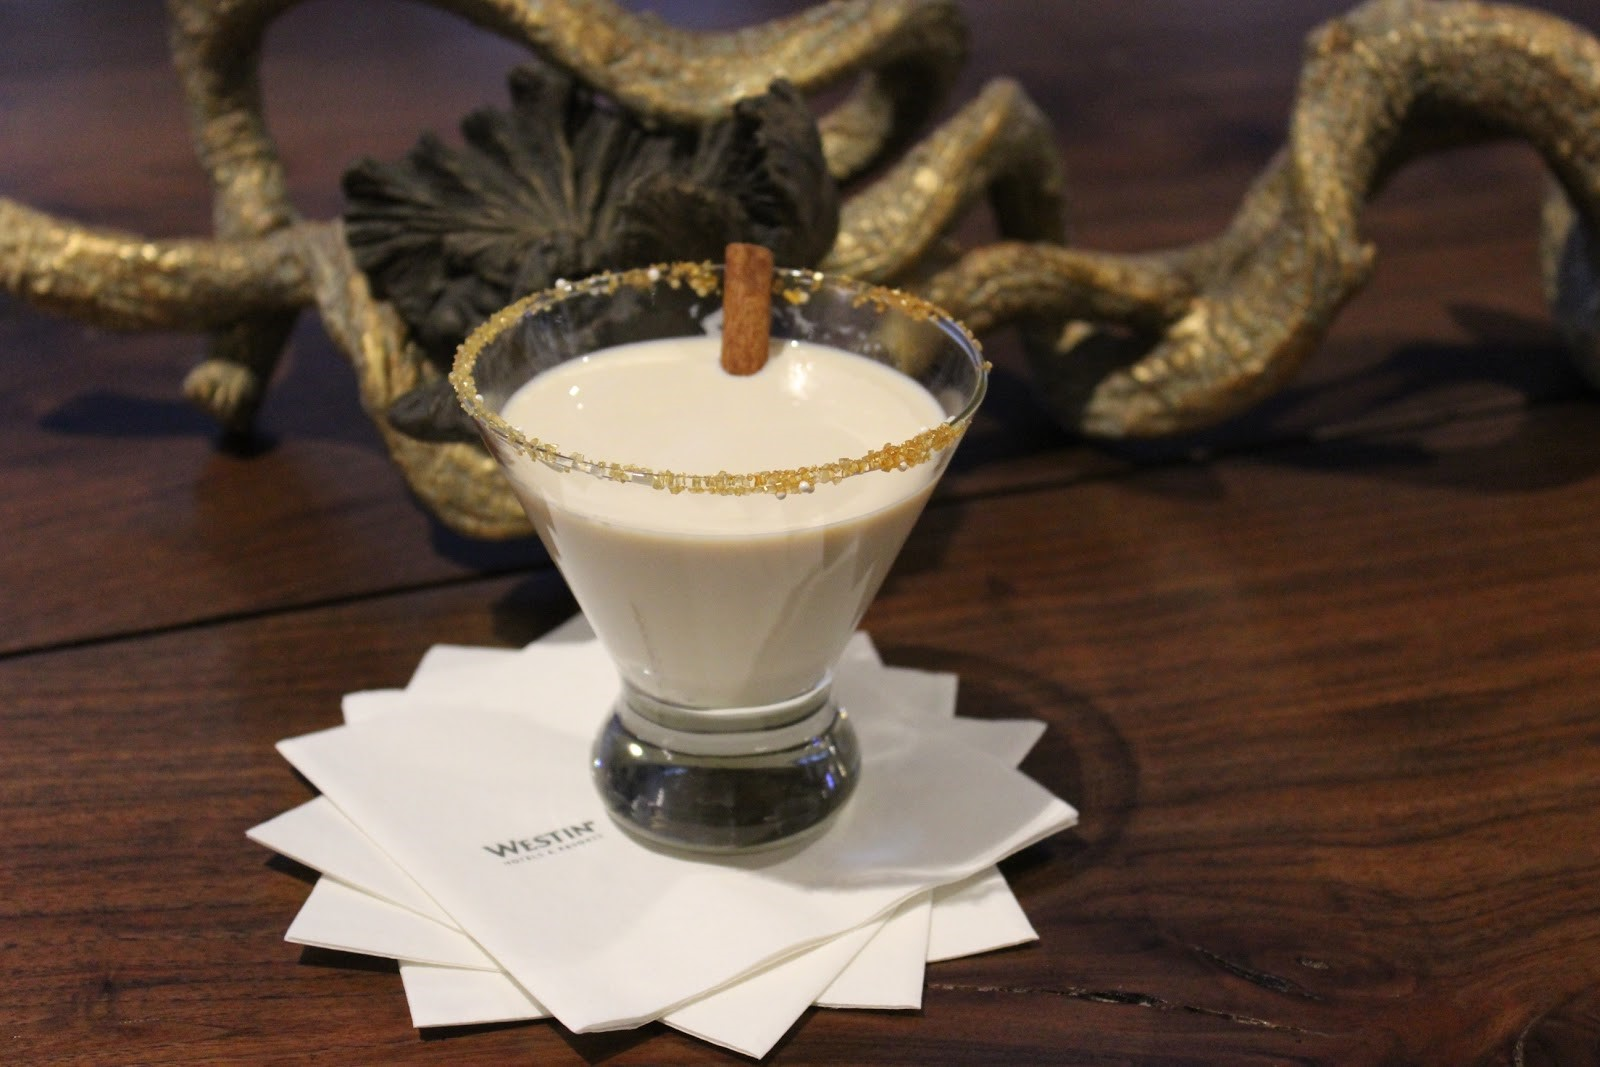 Special Holiday Festive Drinks at Westin DFW Airport Hotel